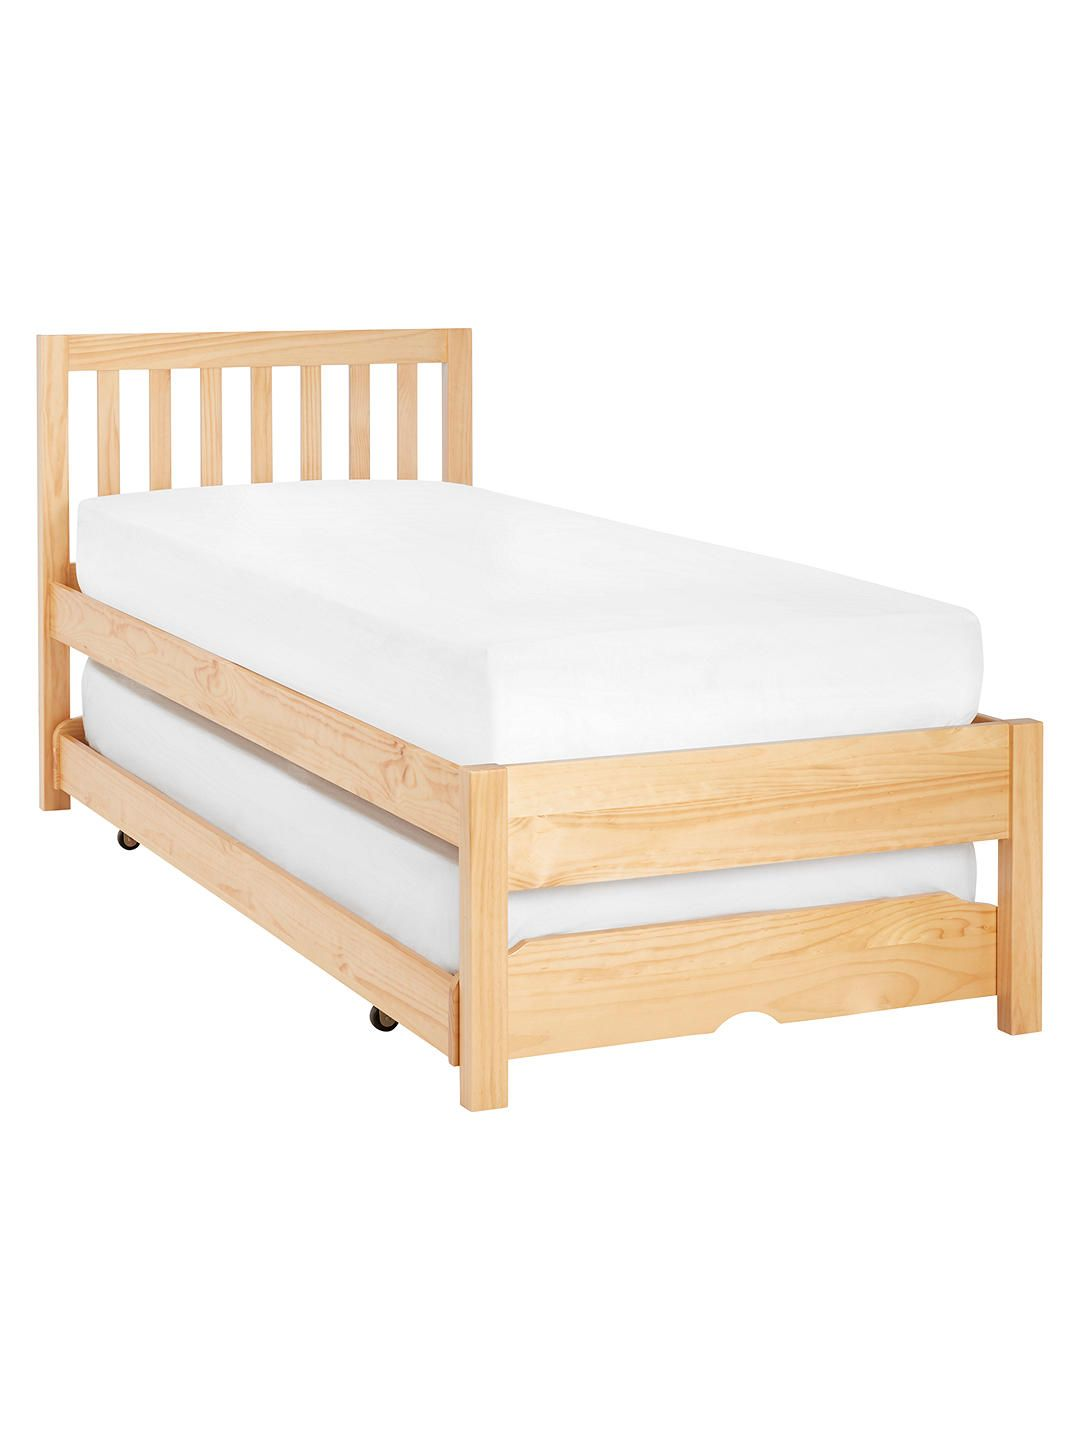 John lewis u partners wilton child compliant trundle guest bed with